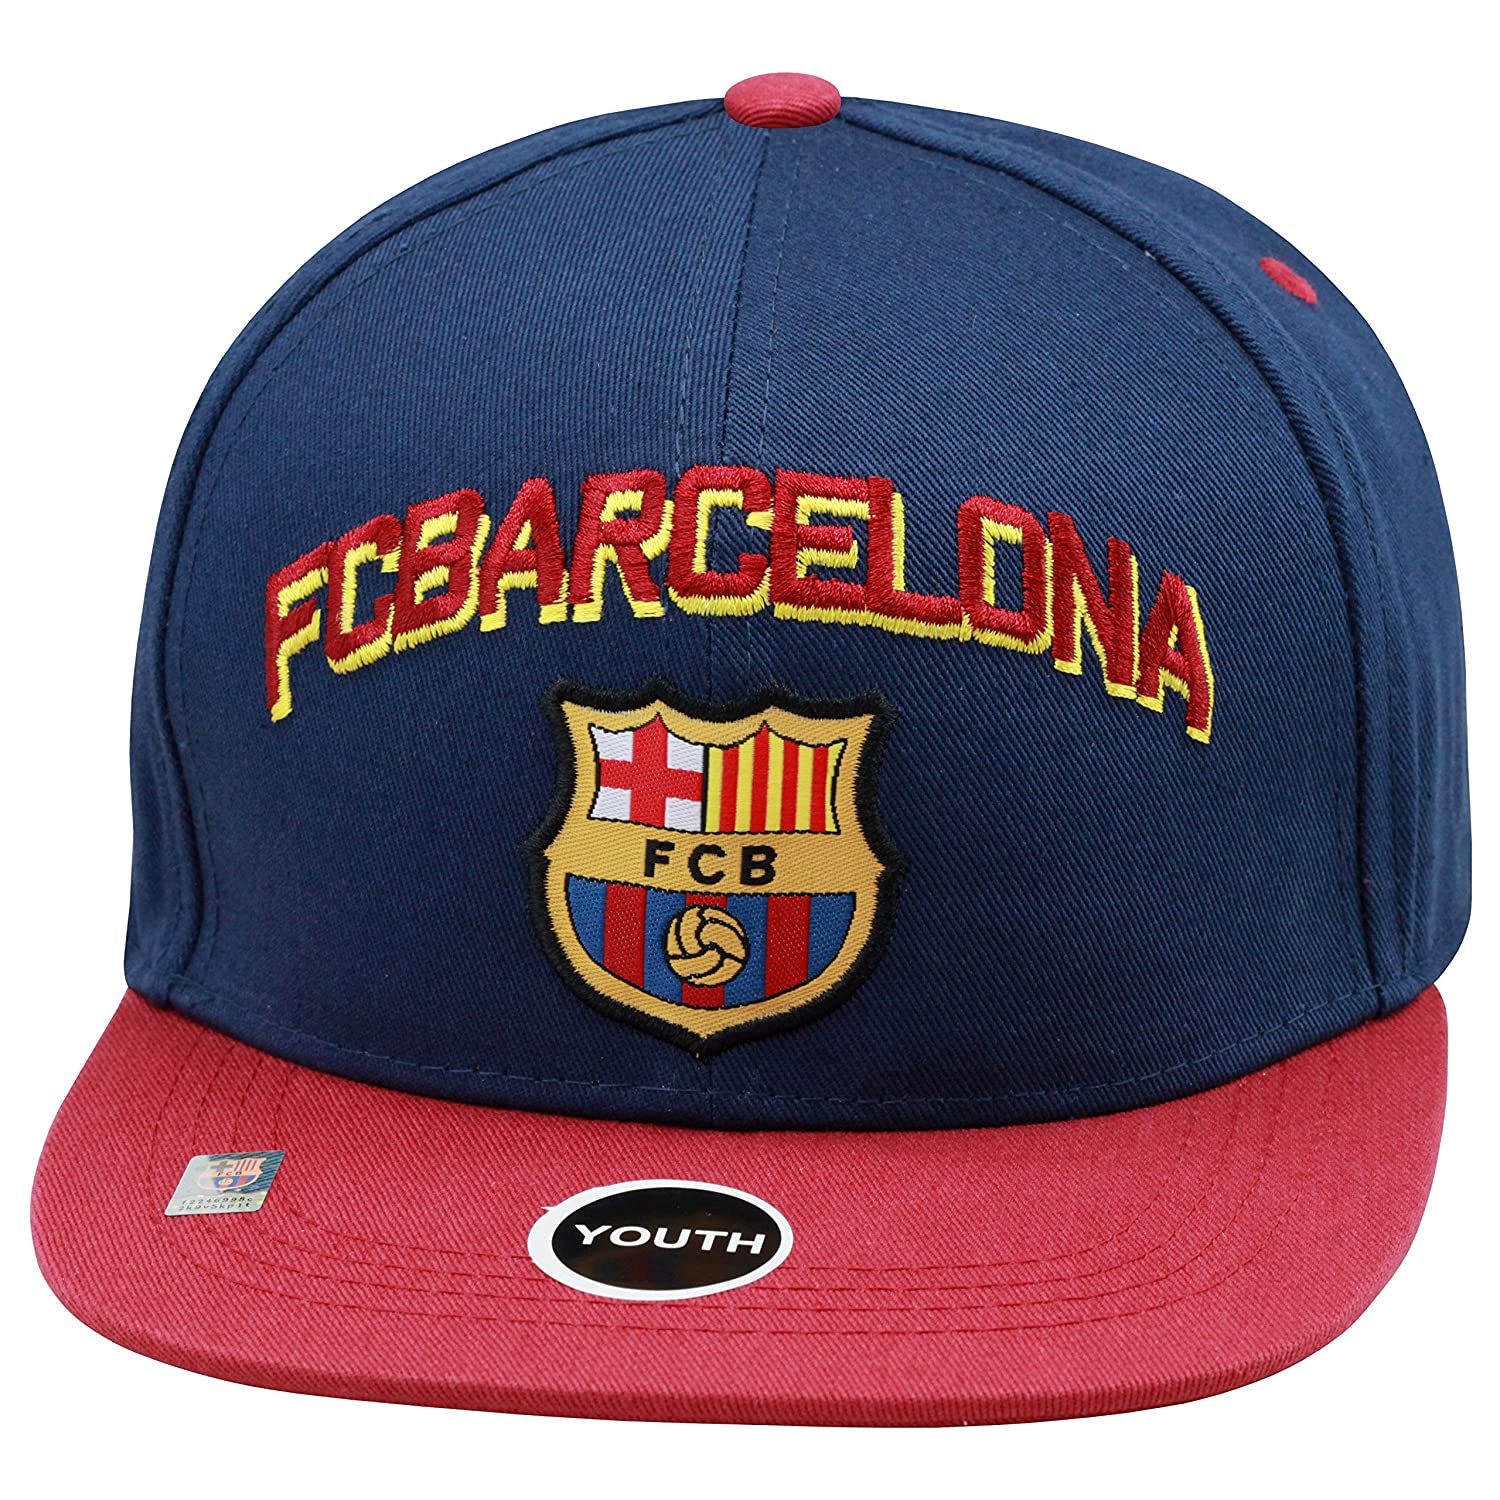 Amazon.com  Fc Barcelona Snapback Youth Kids Adjustable Cap Hat - Blue -  Maroon -Red New Season  Clothing 3643a2faa40